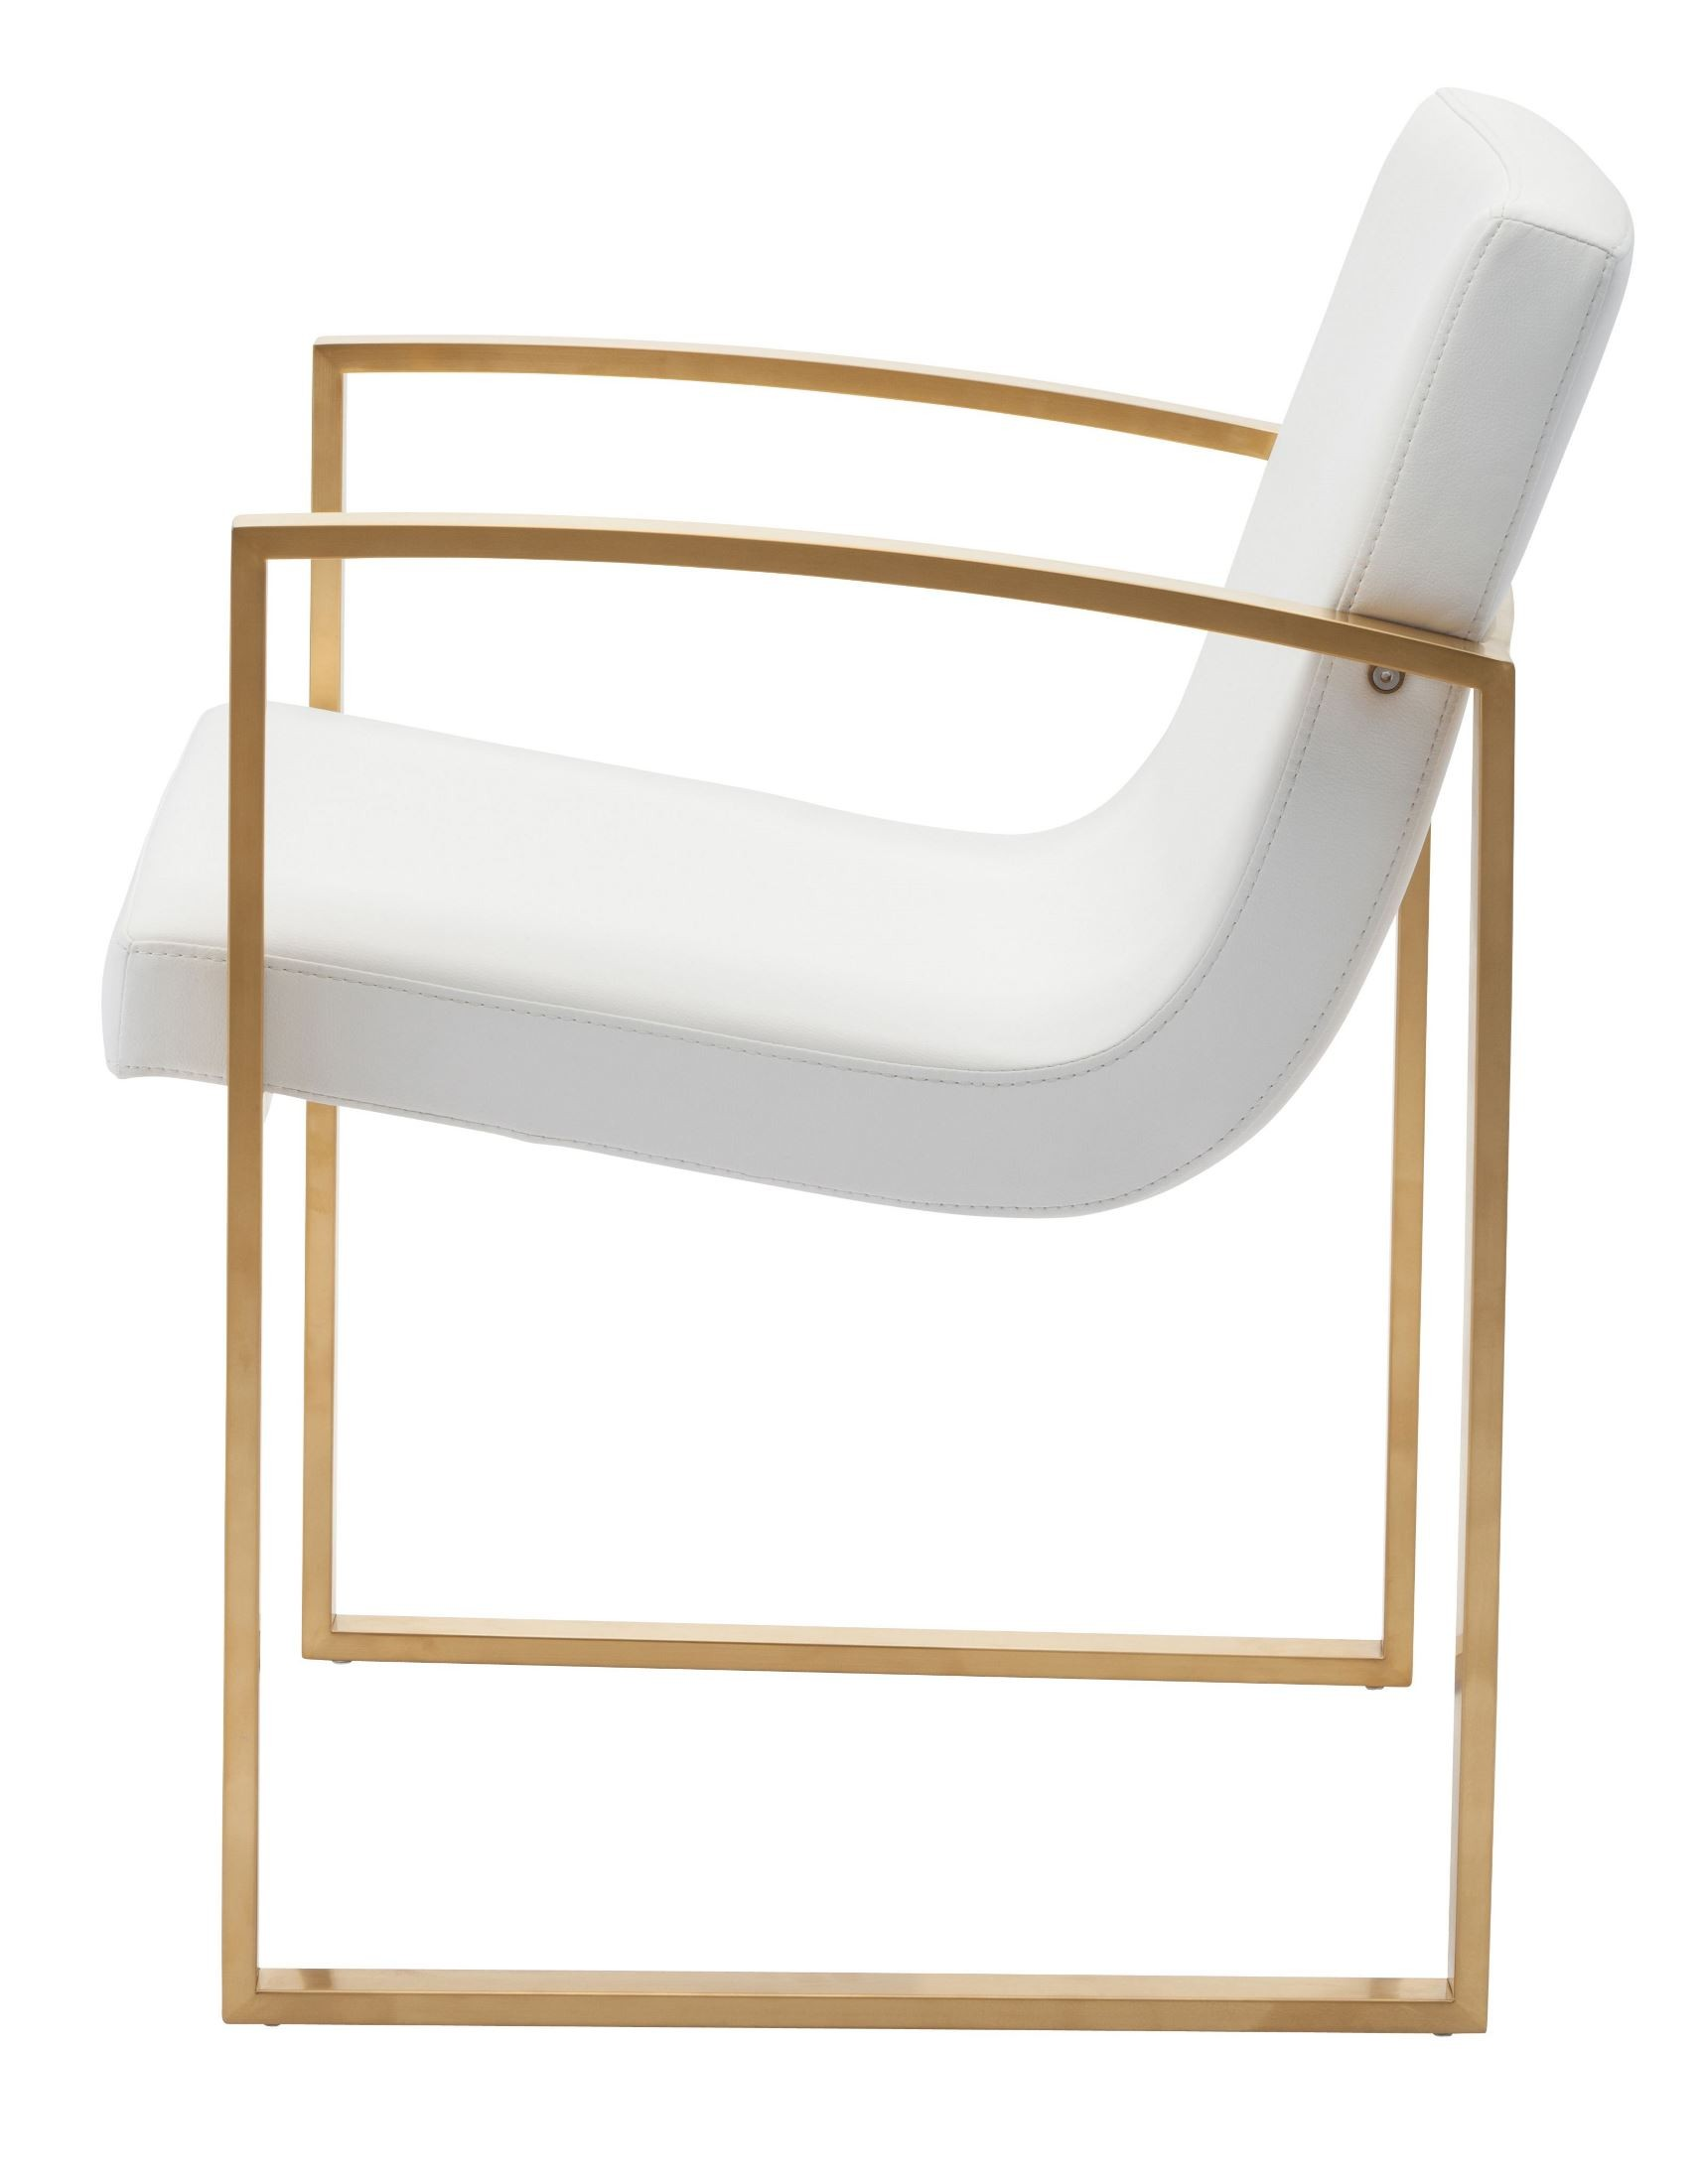 White And Gold Chair Clara White And Gold Naugahyde Dining Chair Hgtb324 Nuevo